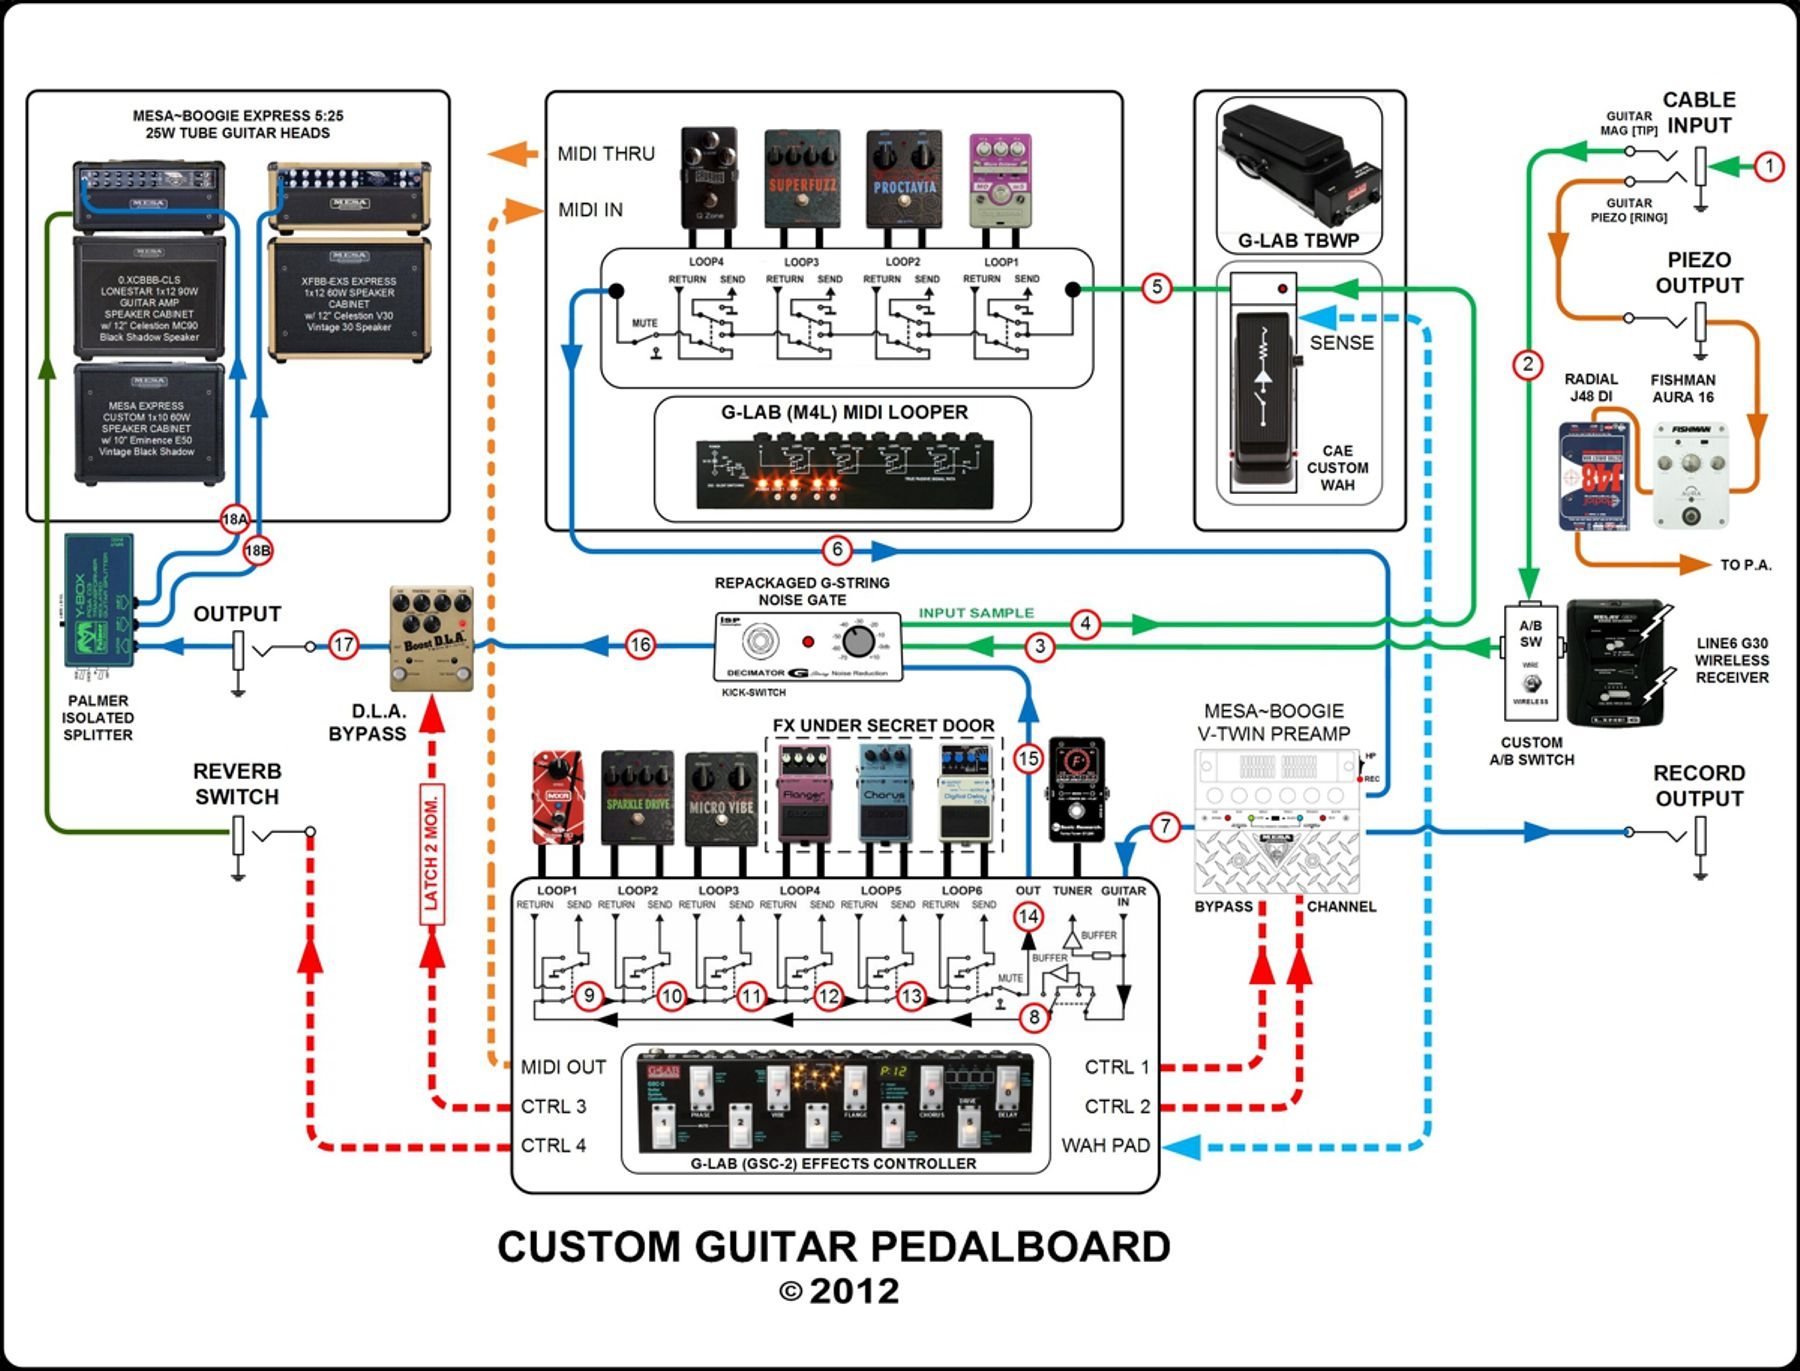 Loop pedal rig schematic electrical work wiring diagram v twin pedalboard rh stagecue com guitar effects schematics guitar effects schematics cheapraybanclubmaster